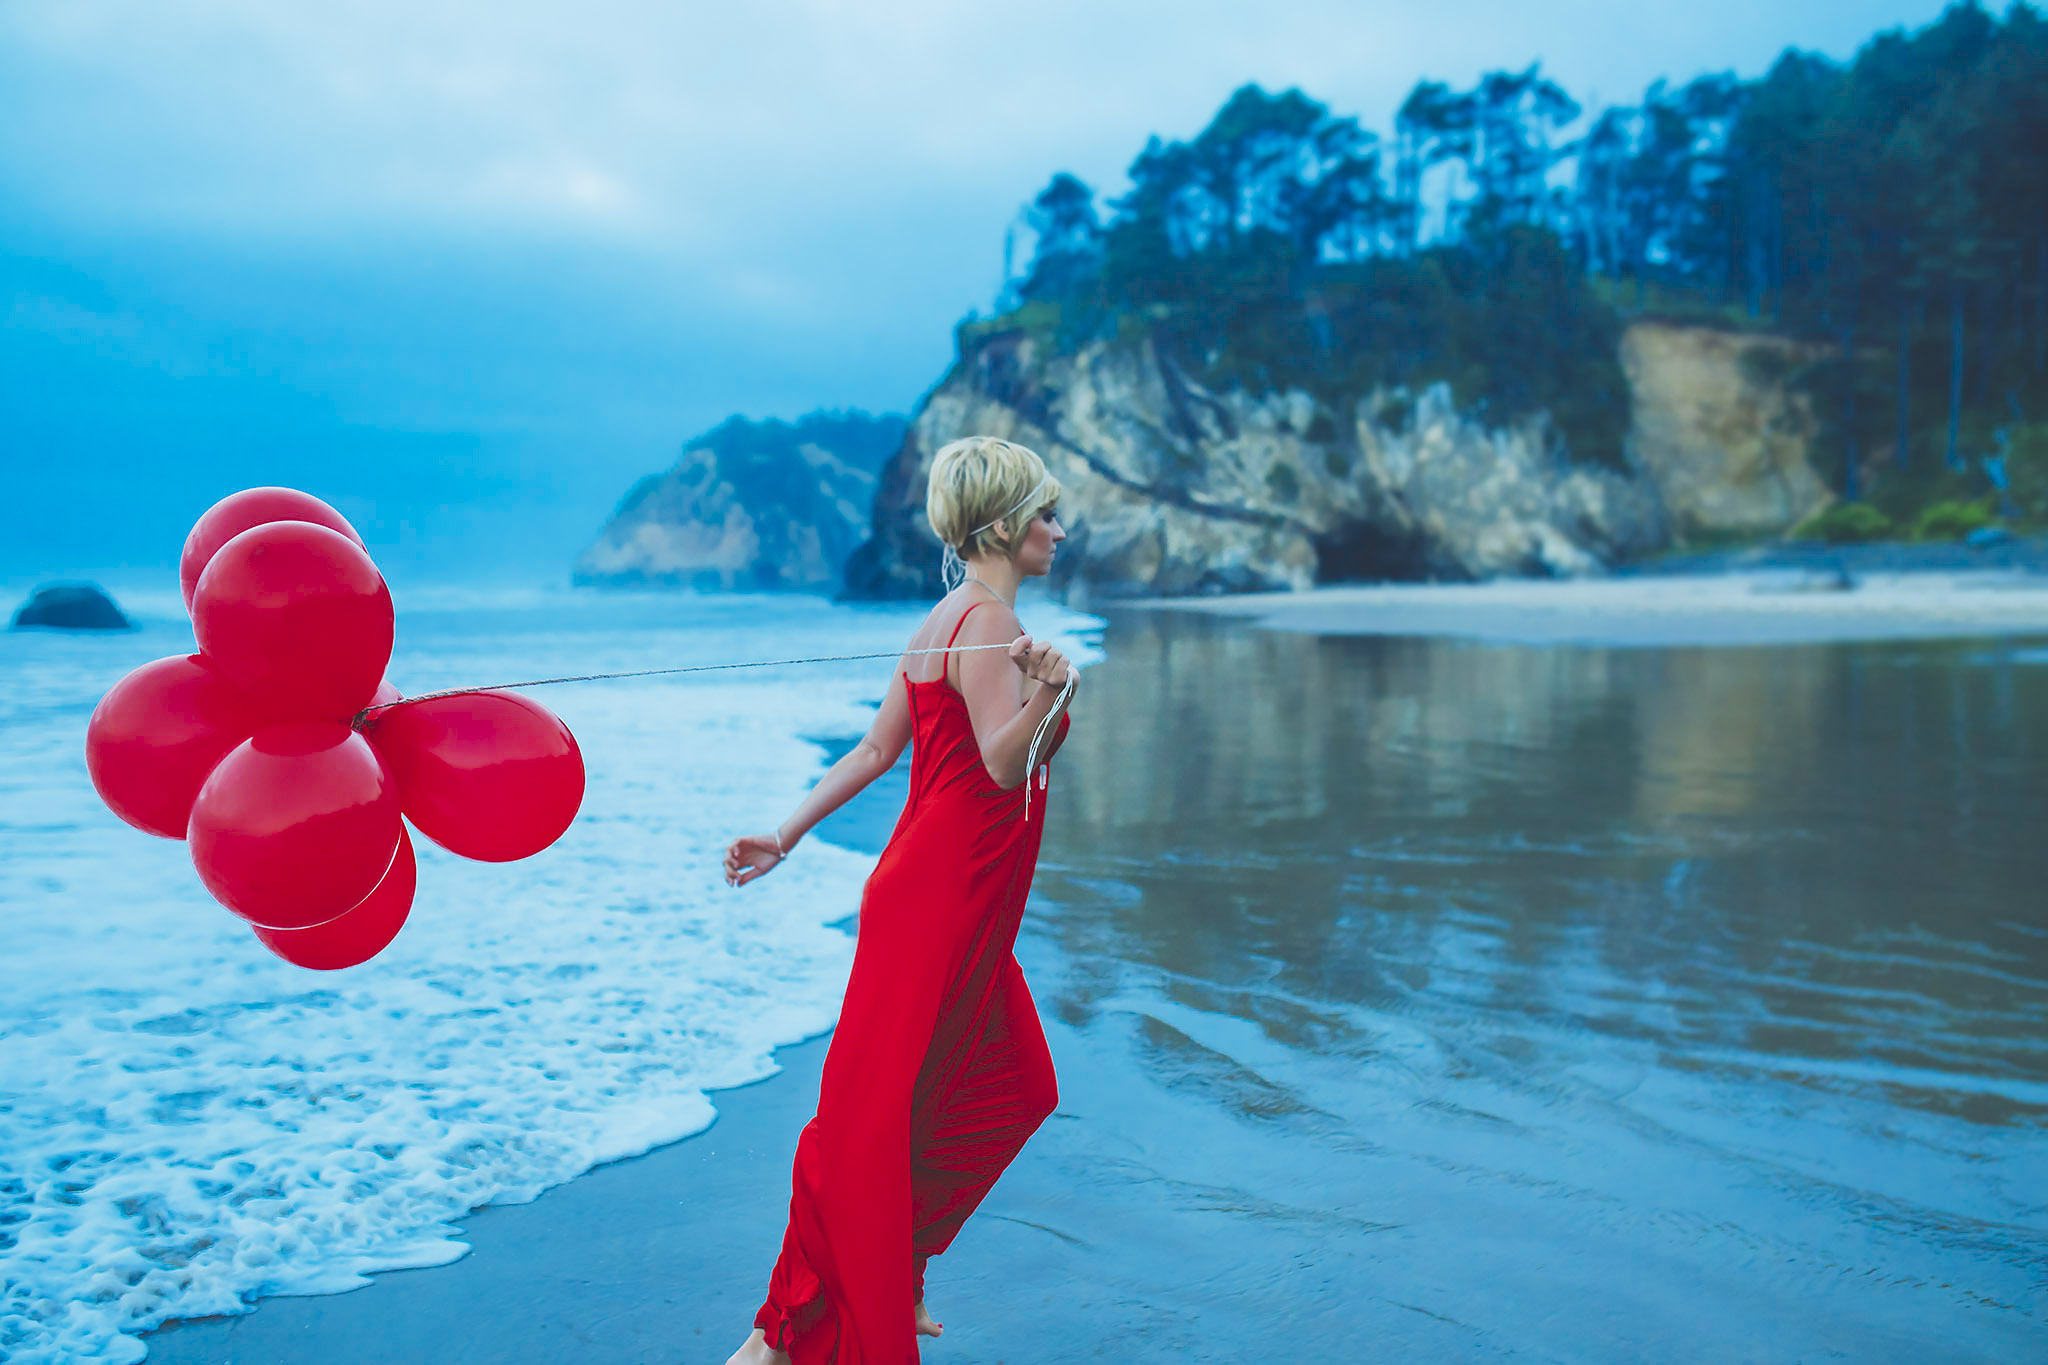 red dress project, oregon coast, jennifer picard photography